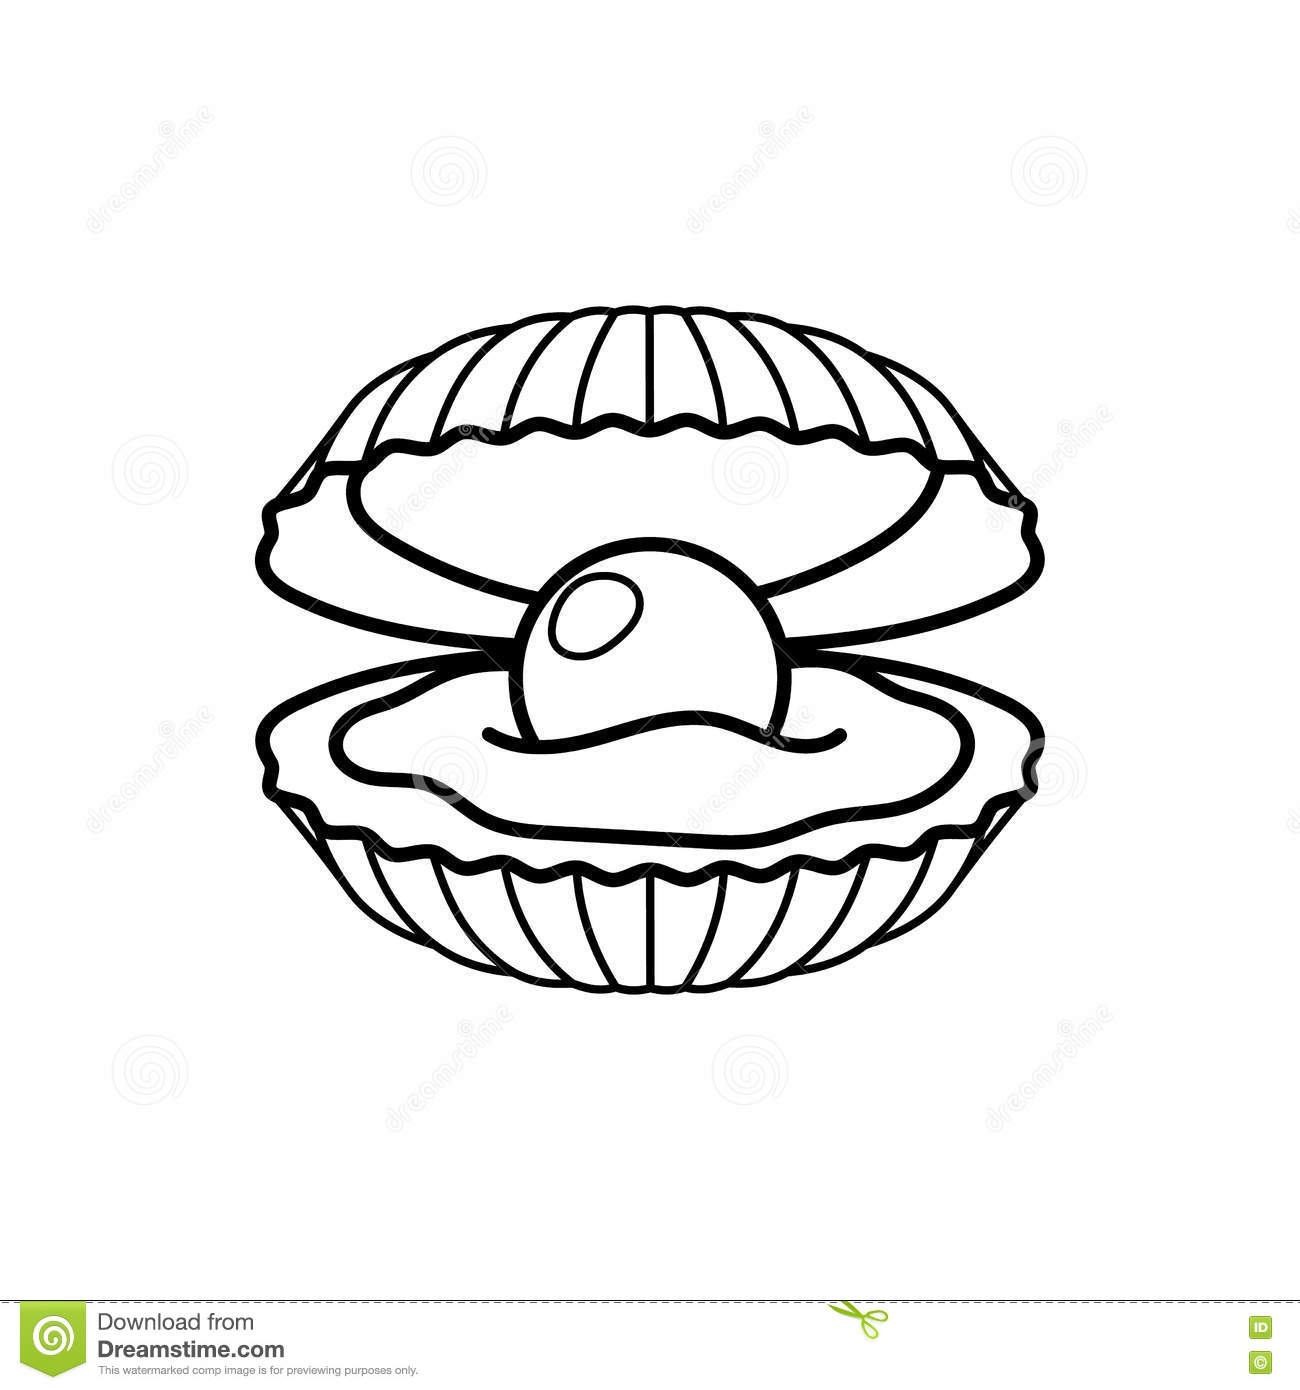 Image Of A Black Pearl In The Shell Royalty Free Stock